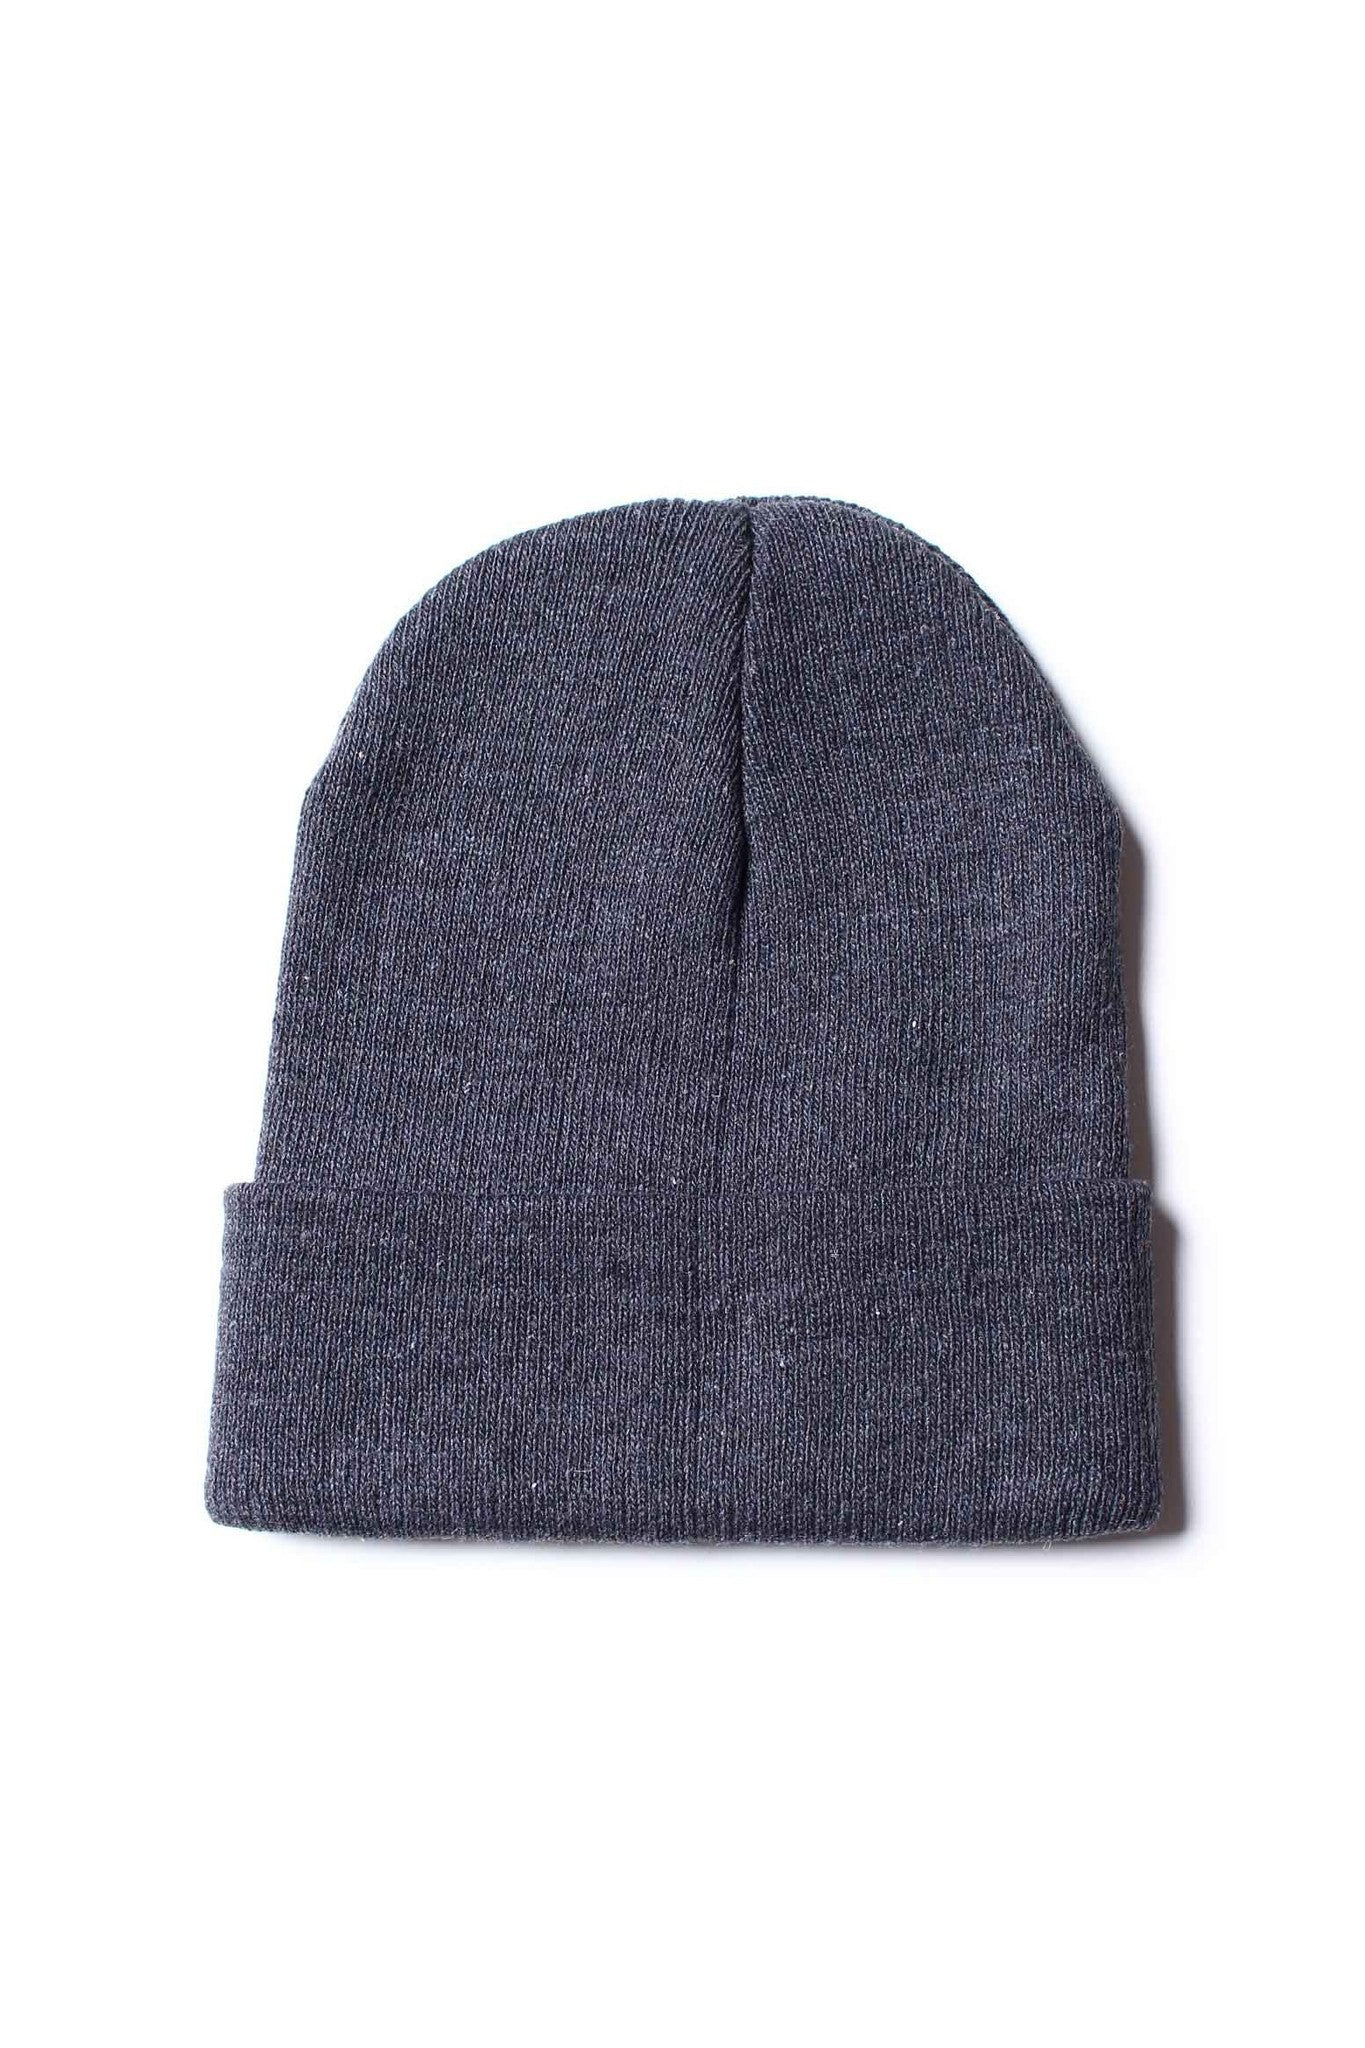 Take Cover Ribbed Beanie - Gray